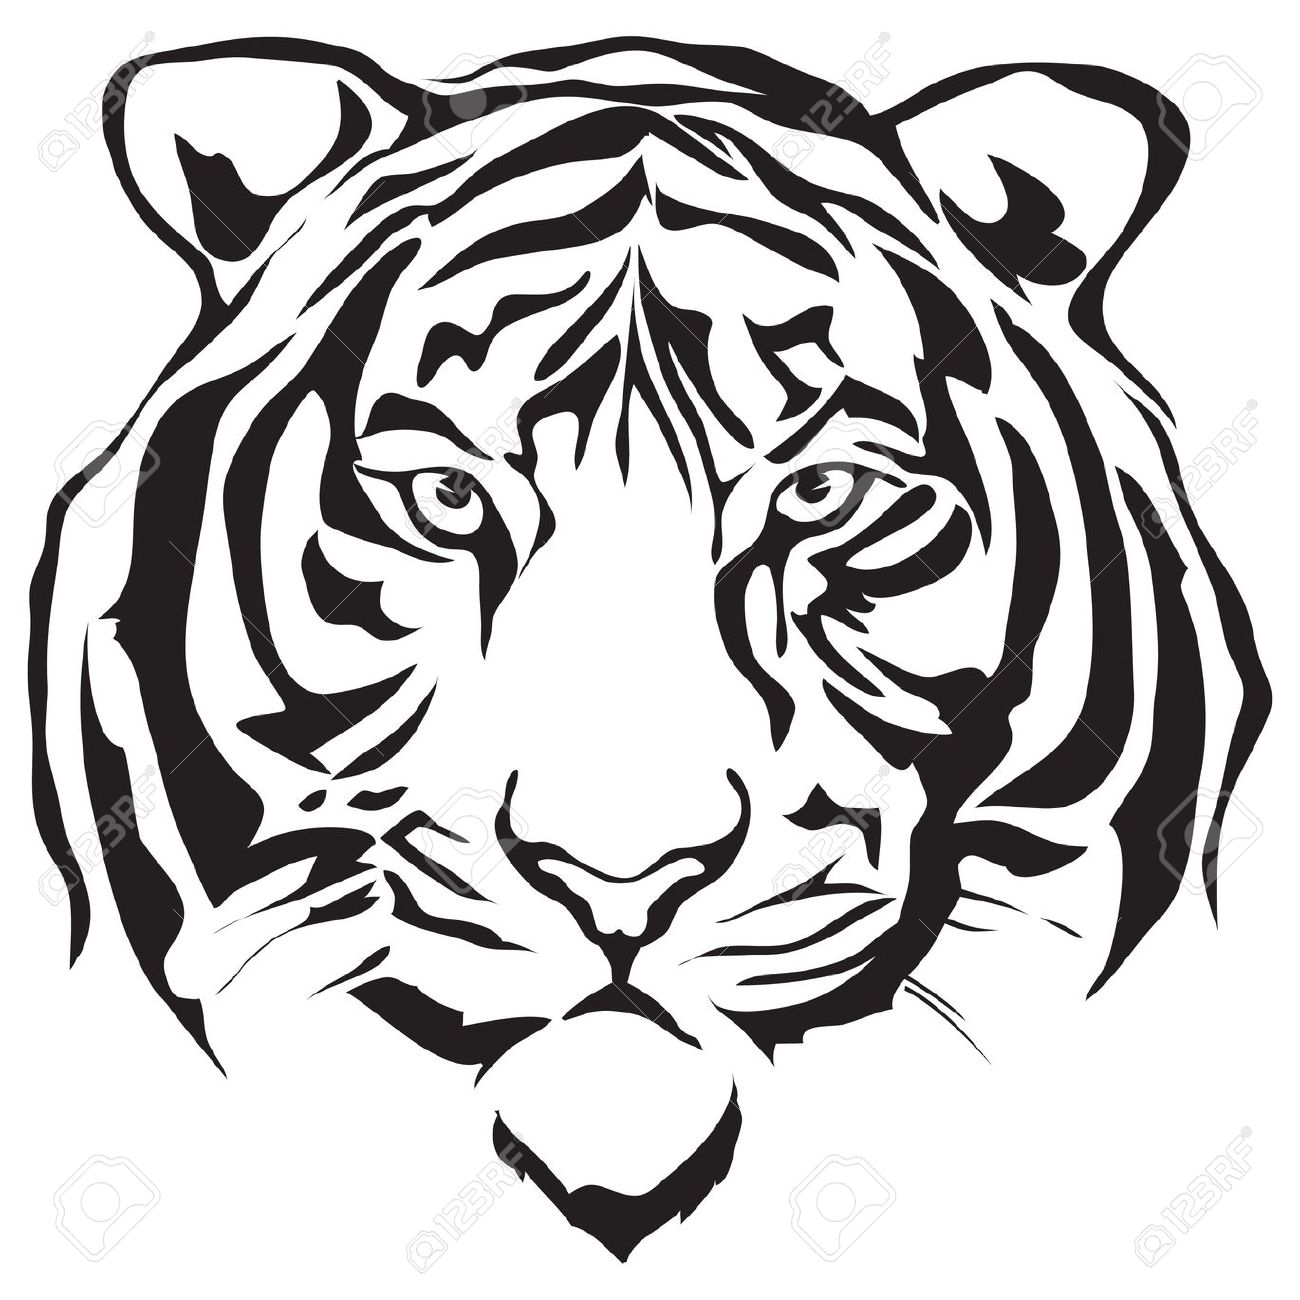 Tiger Head Stock Photos Images, Royalty Free Tiger Head Images And.